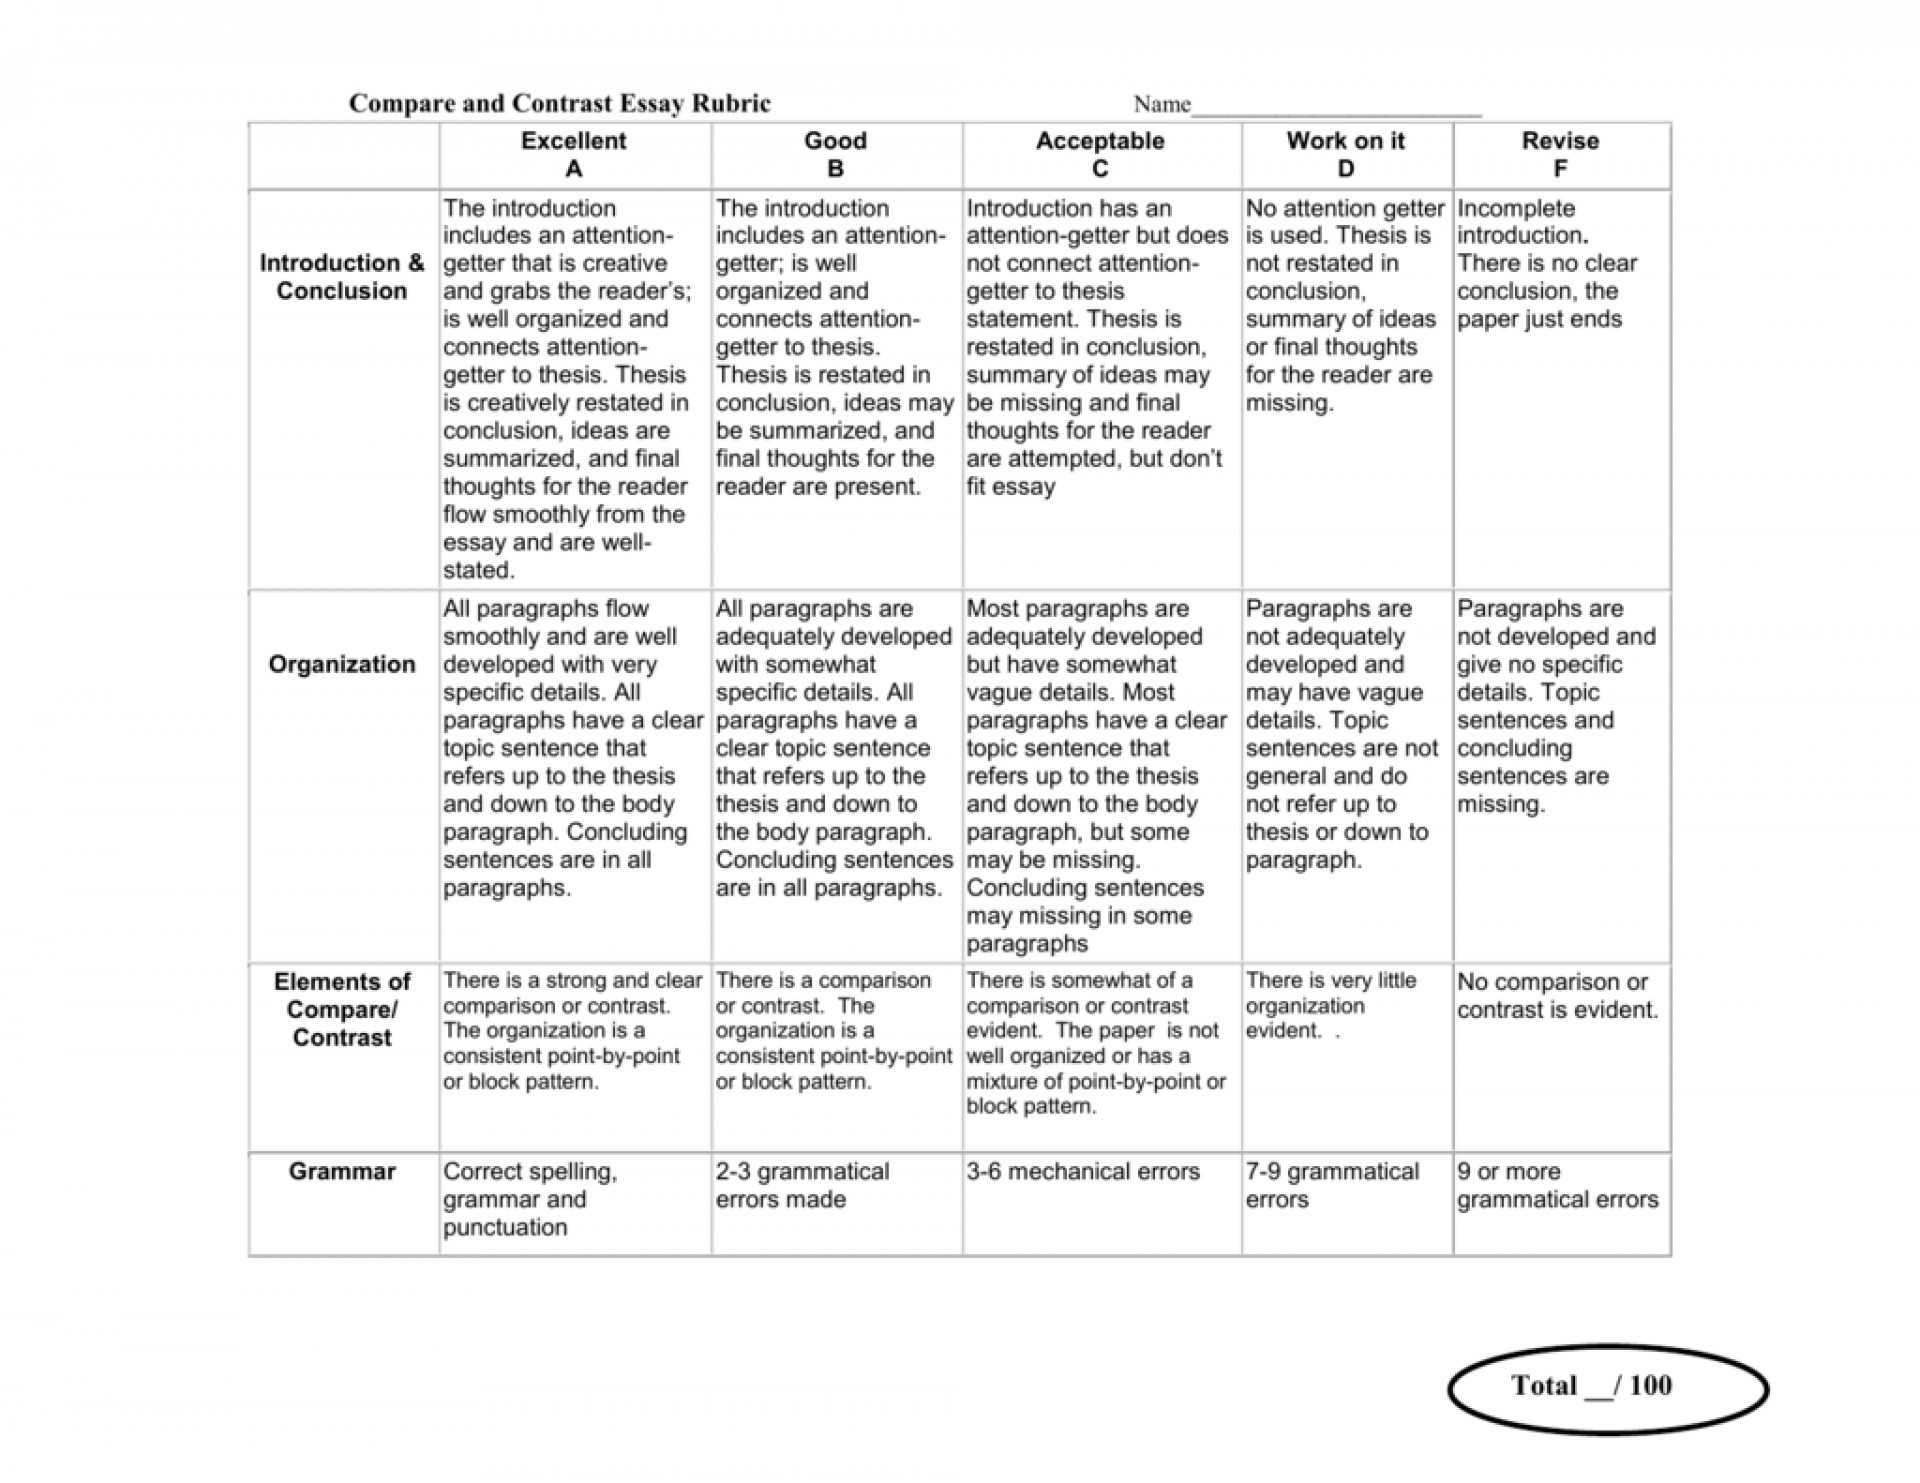 002 Essay Example Compare And Contrast Rubric 007703019 2 Wondrous College 7th Grade 1920